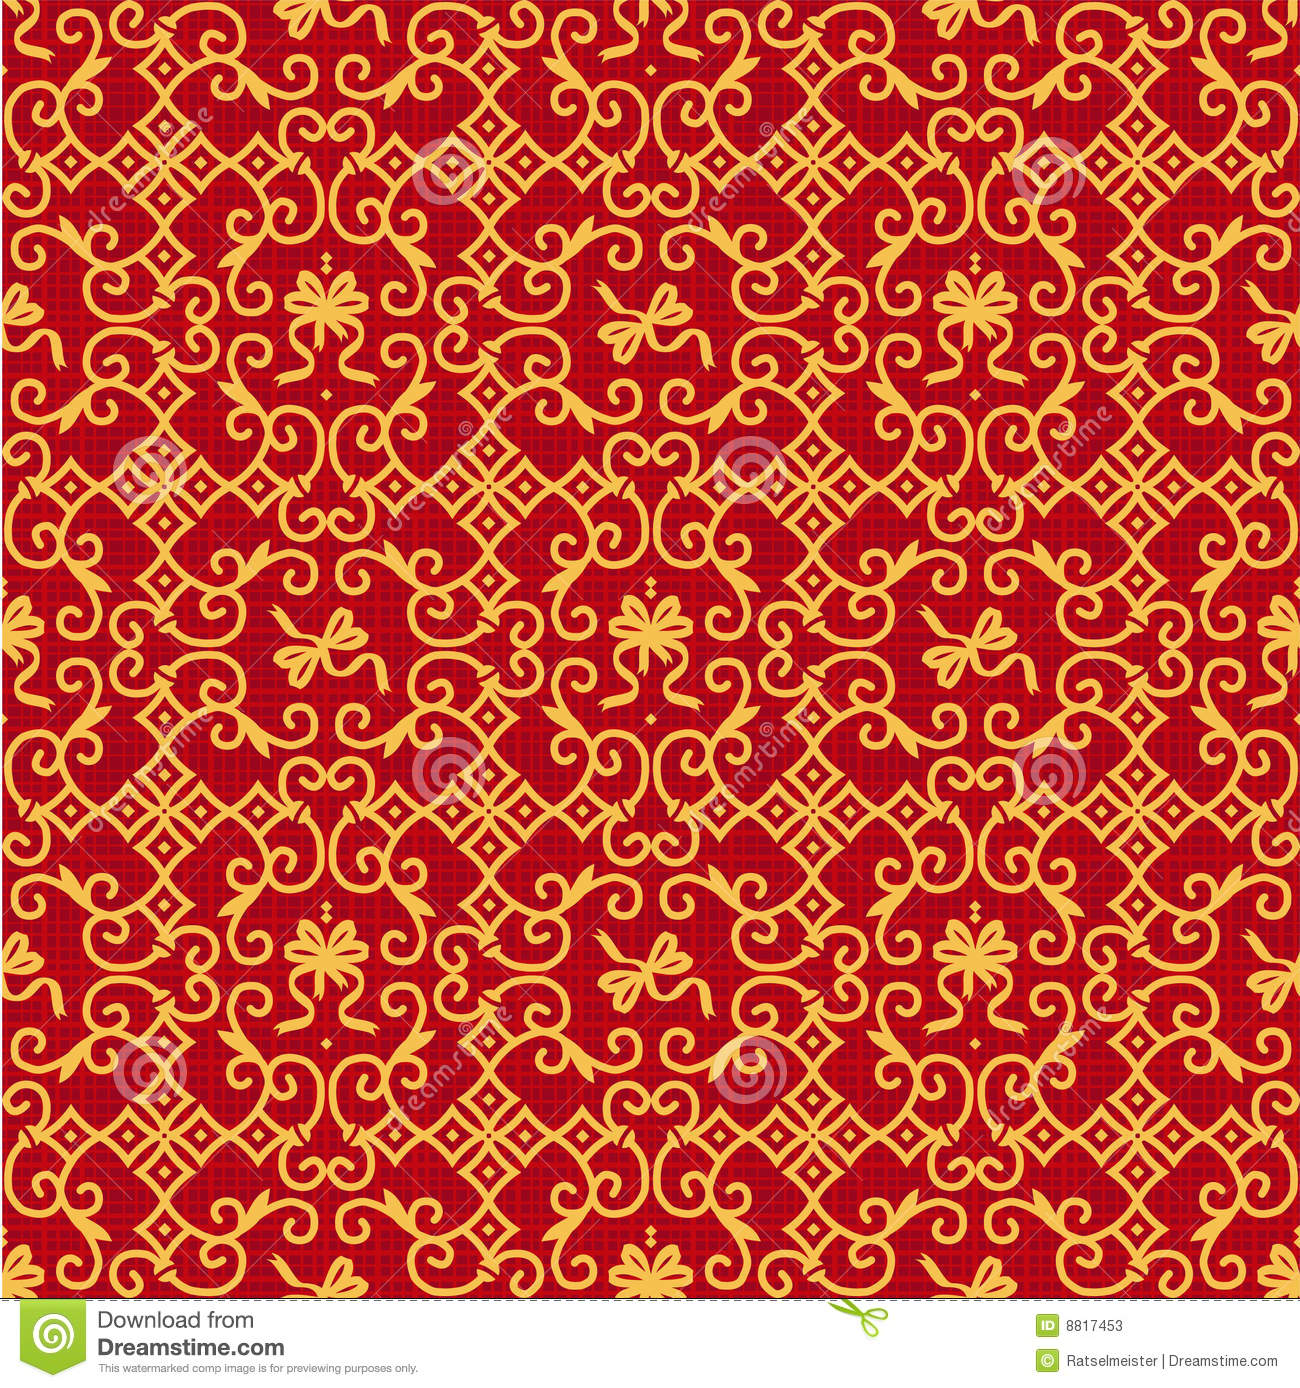 Red And Gold Ornate Background Stock Photos - Image: 8817453: www.dreamstime.com/stock-photos-red-gold-ornate-background...